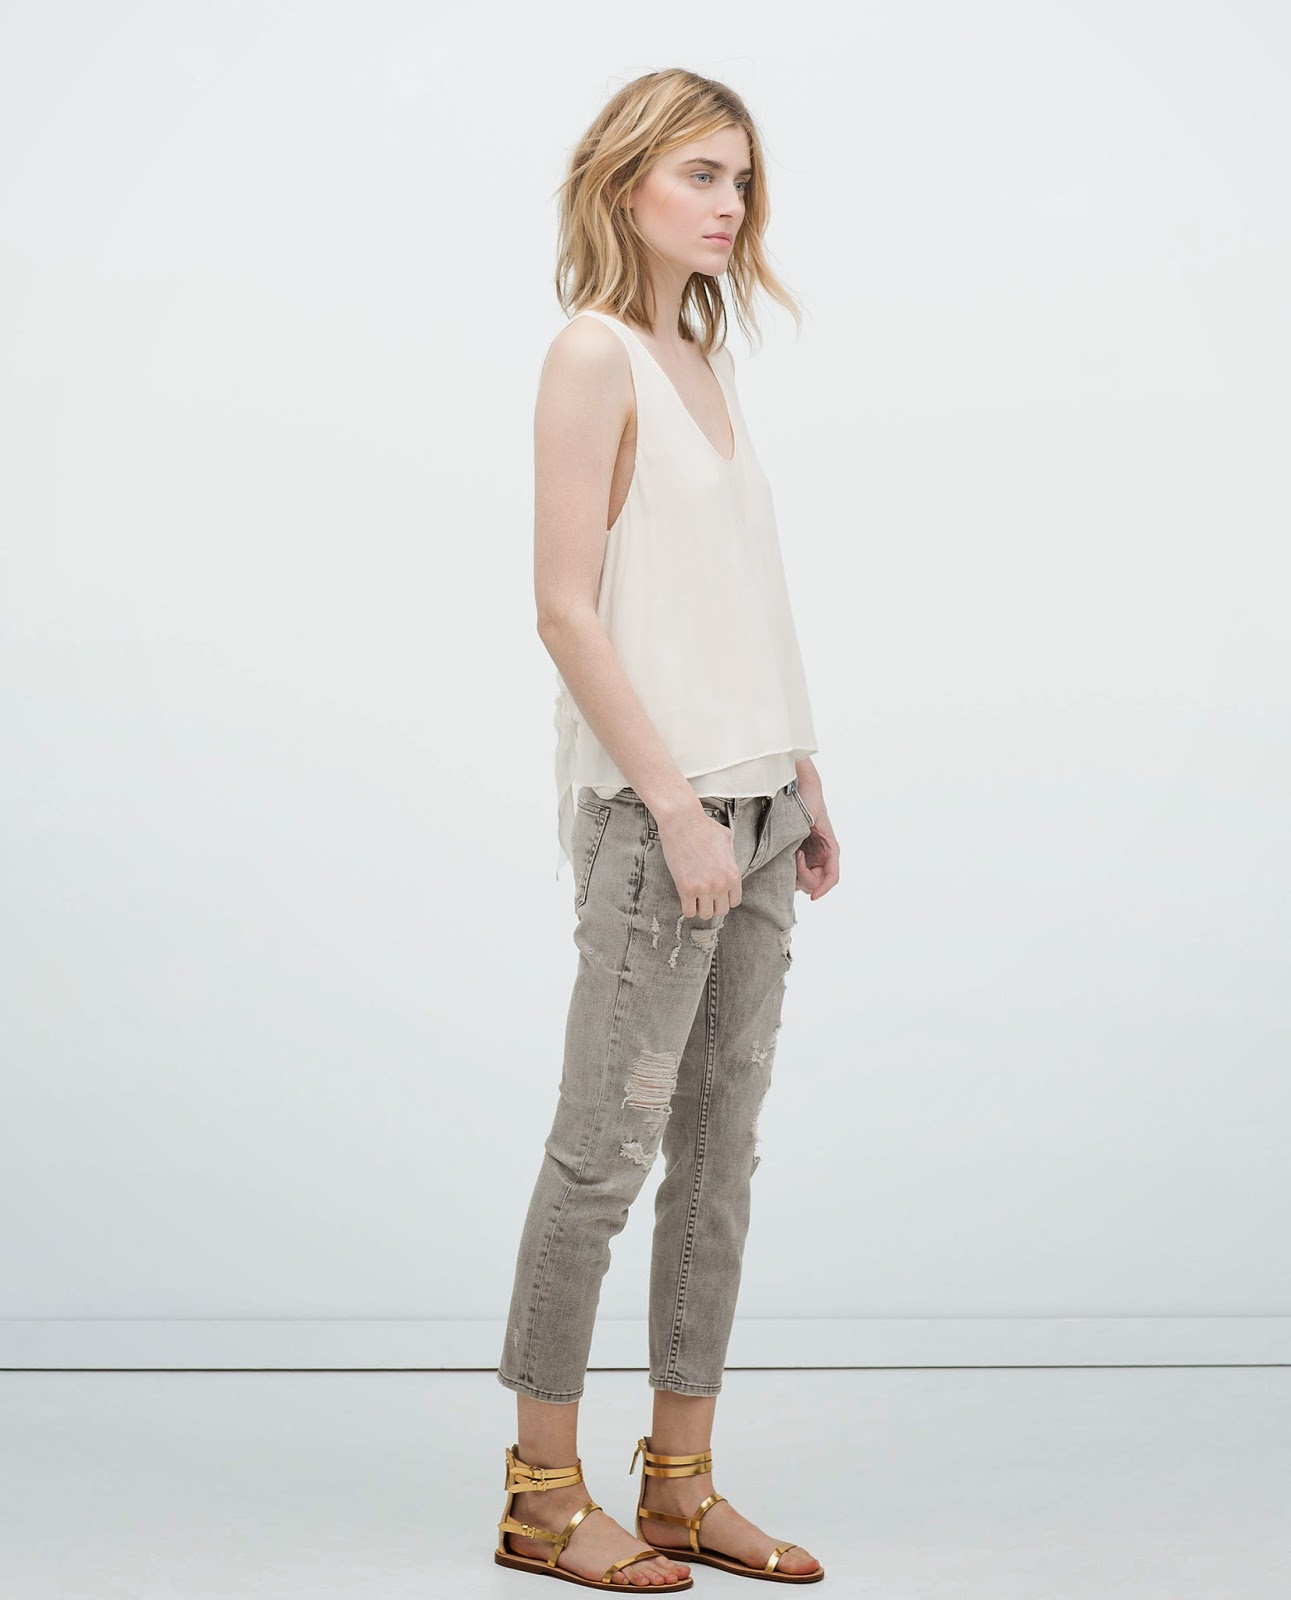 zara grey ripped jeans, zara distressed jeans,